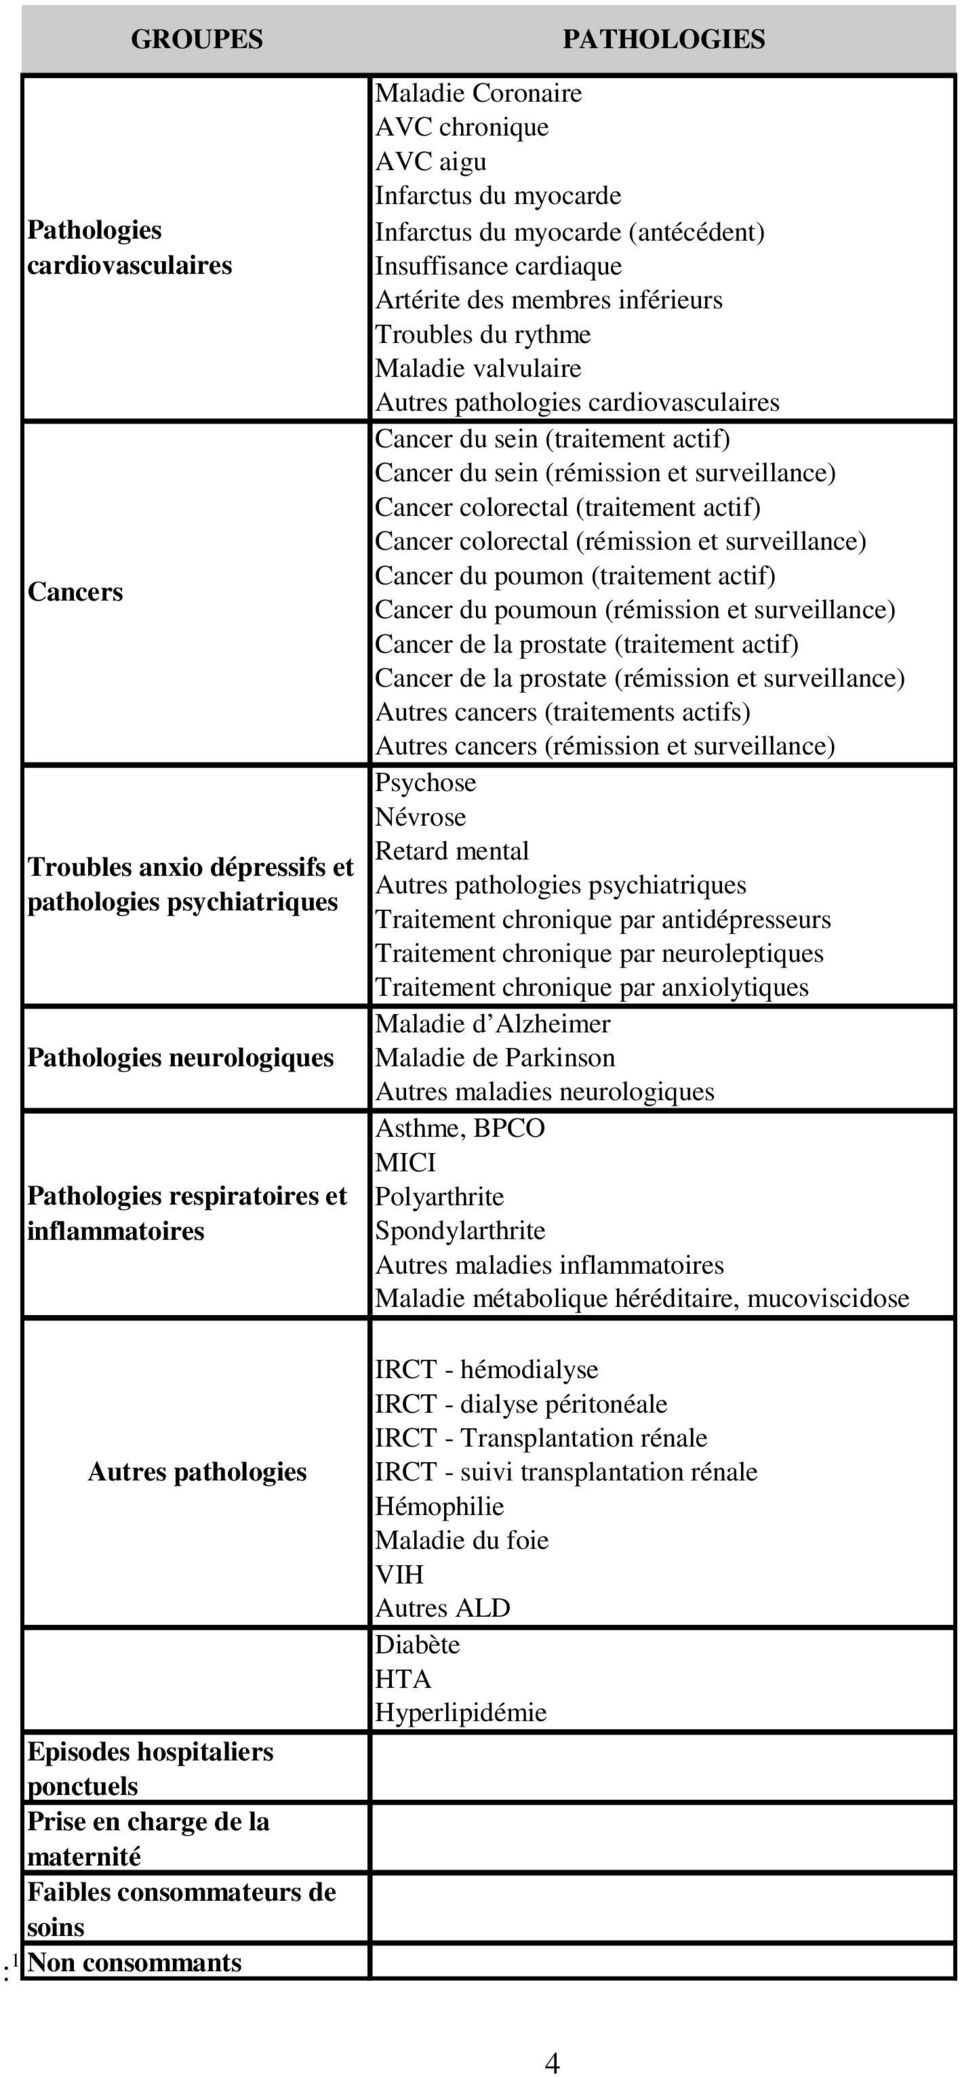 pathologies cardiovasculaires Cancer du sein (traitement actif) Cancer du sein (rémission et surveillance) Cancer colorectal (traitement actif) Cancer colorectal (rémission et surveillance) Cancer du